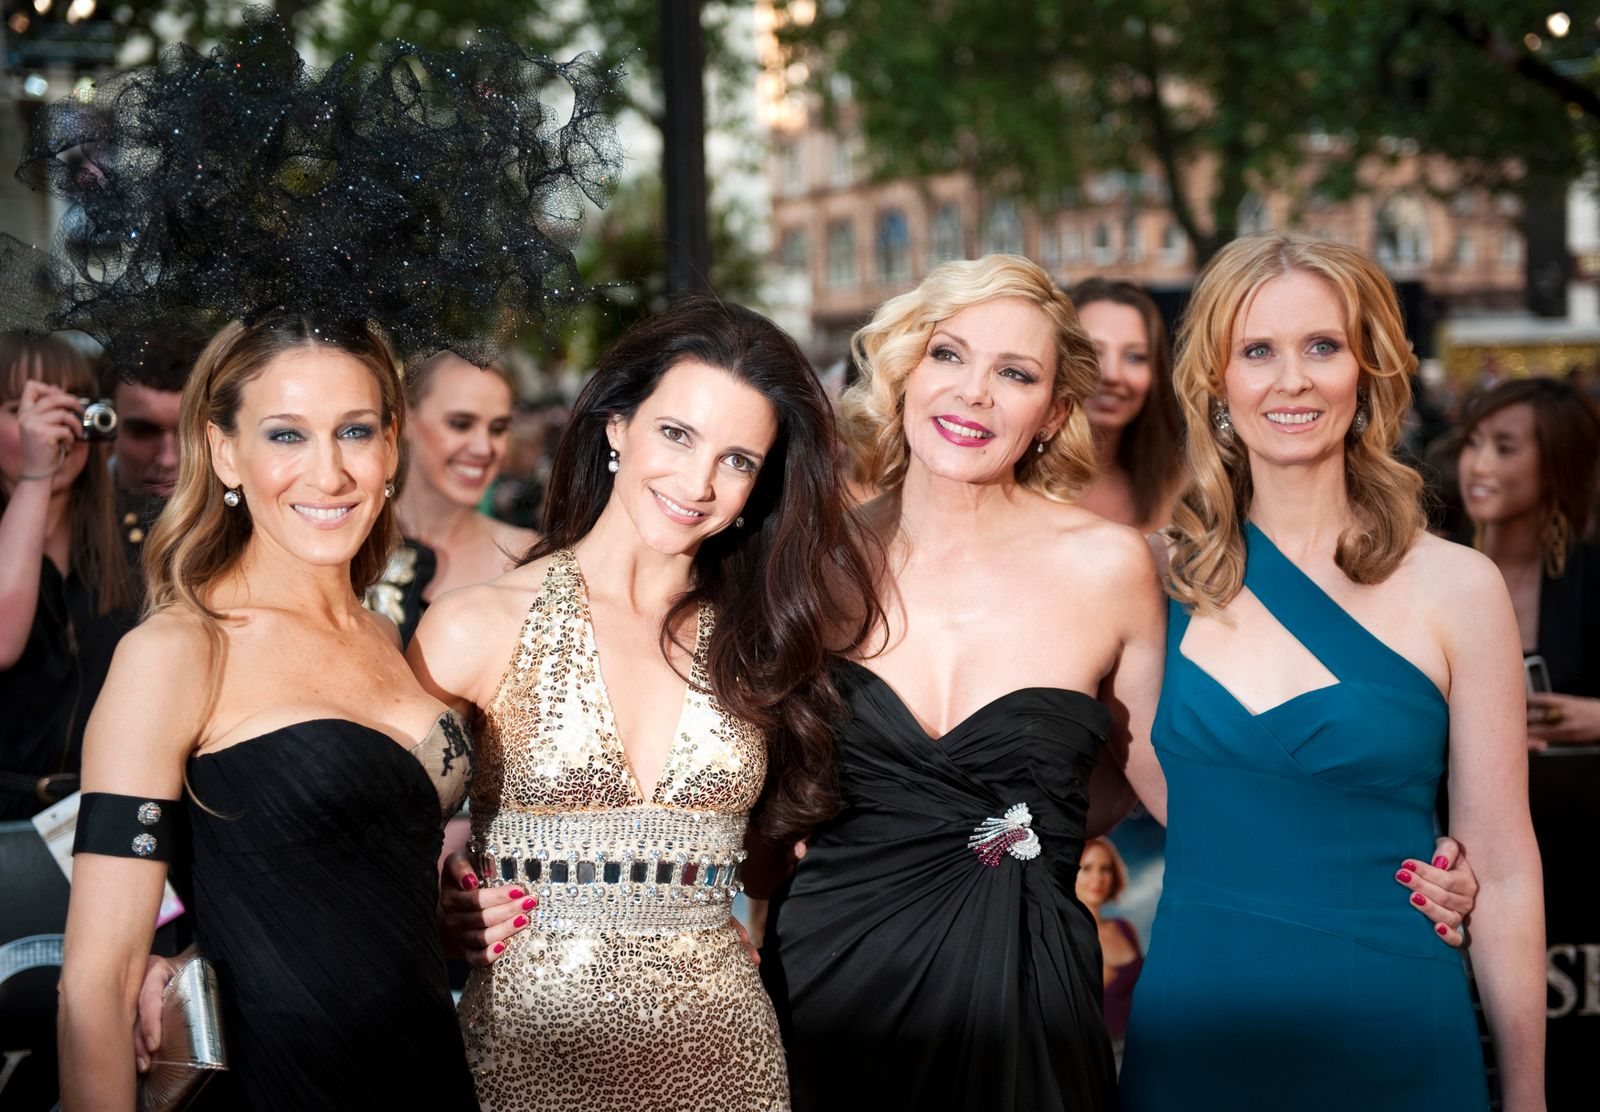 Actresses Sarah Jessica Parker, Kristin Davis, Kim Catrall and Cynthia Nixon pose for photographers in London